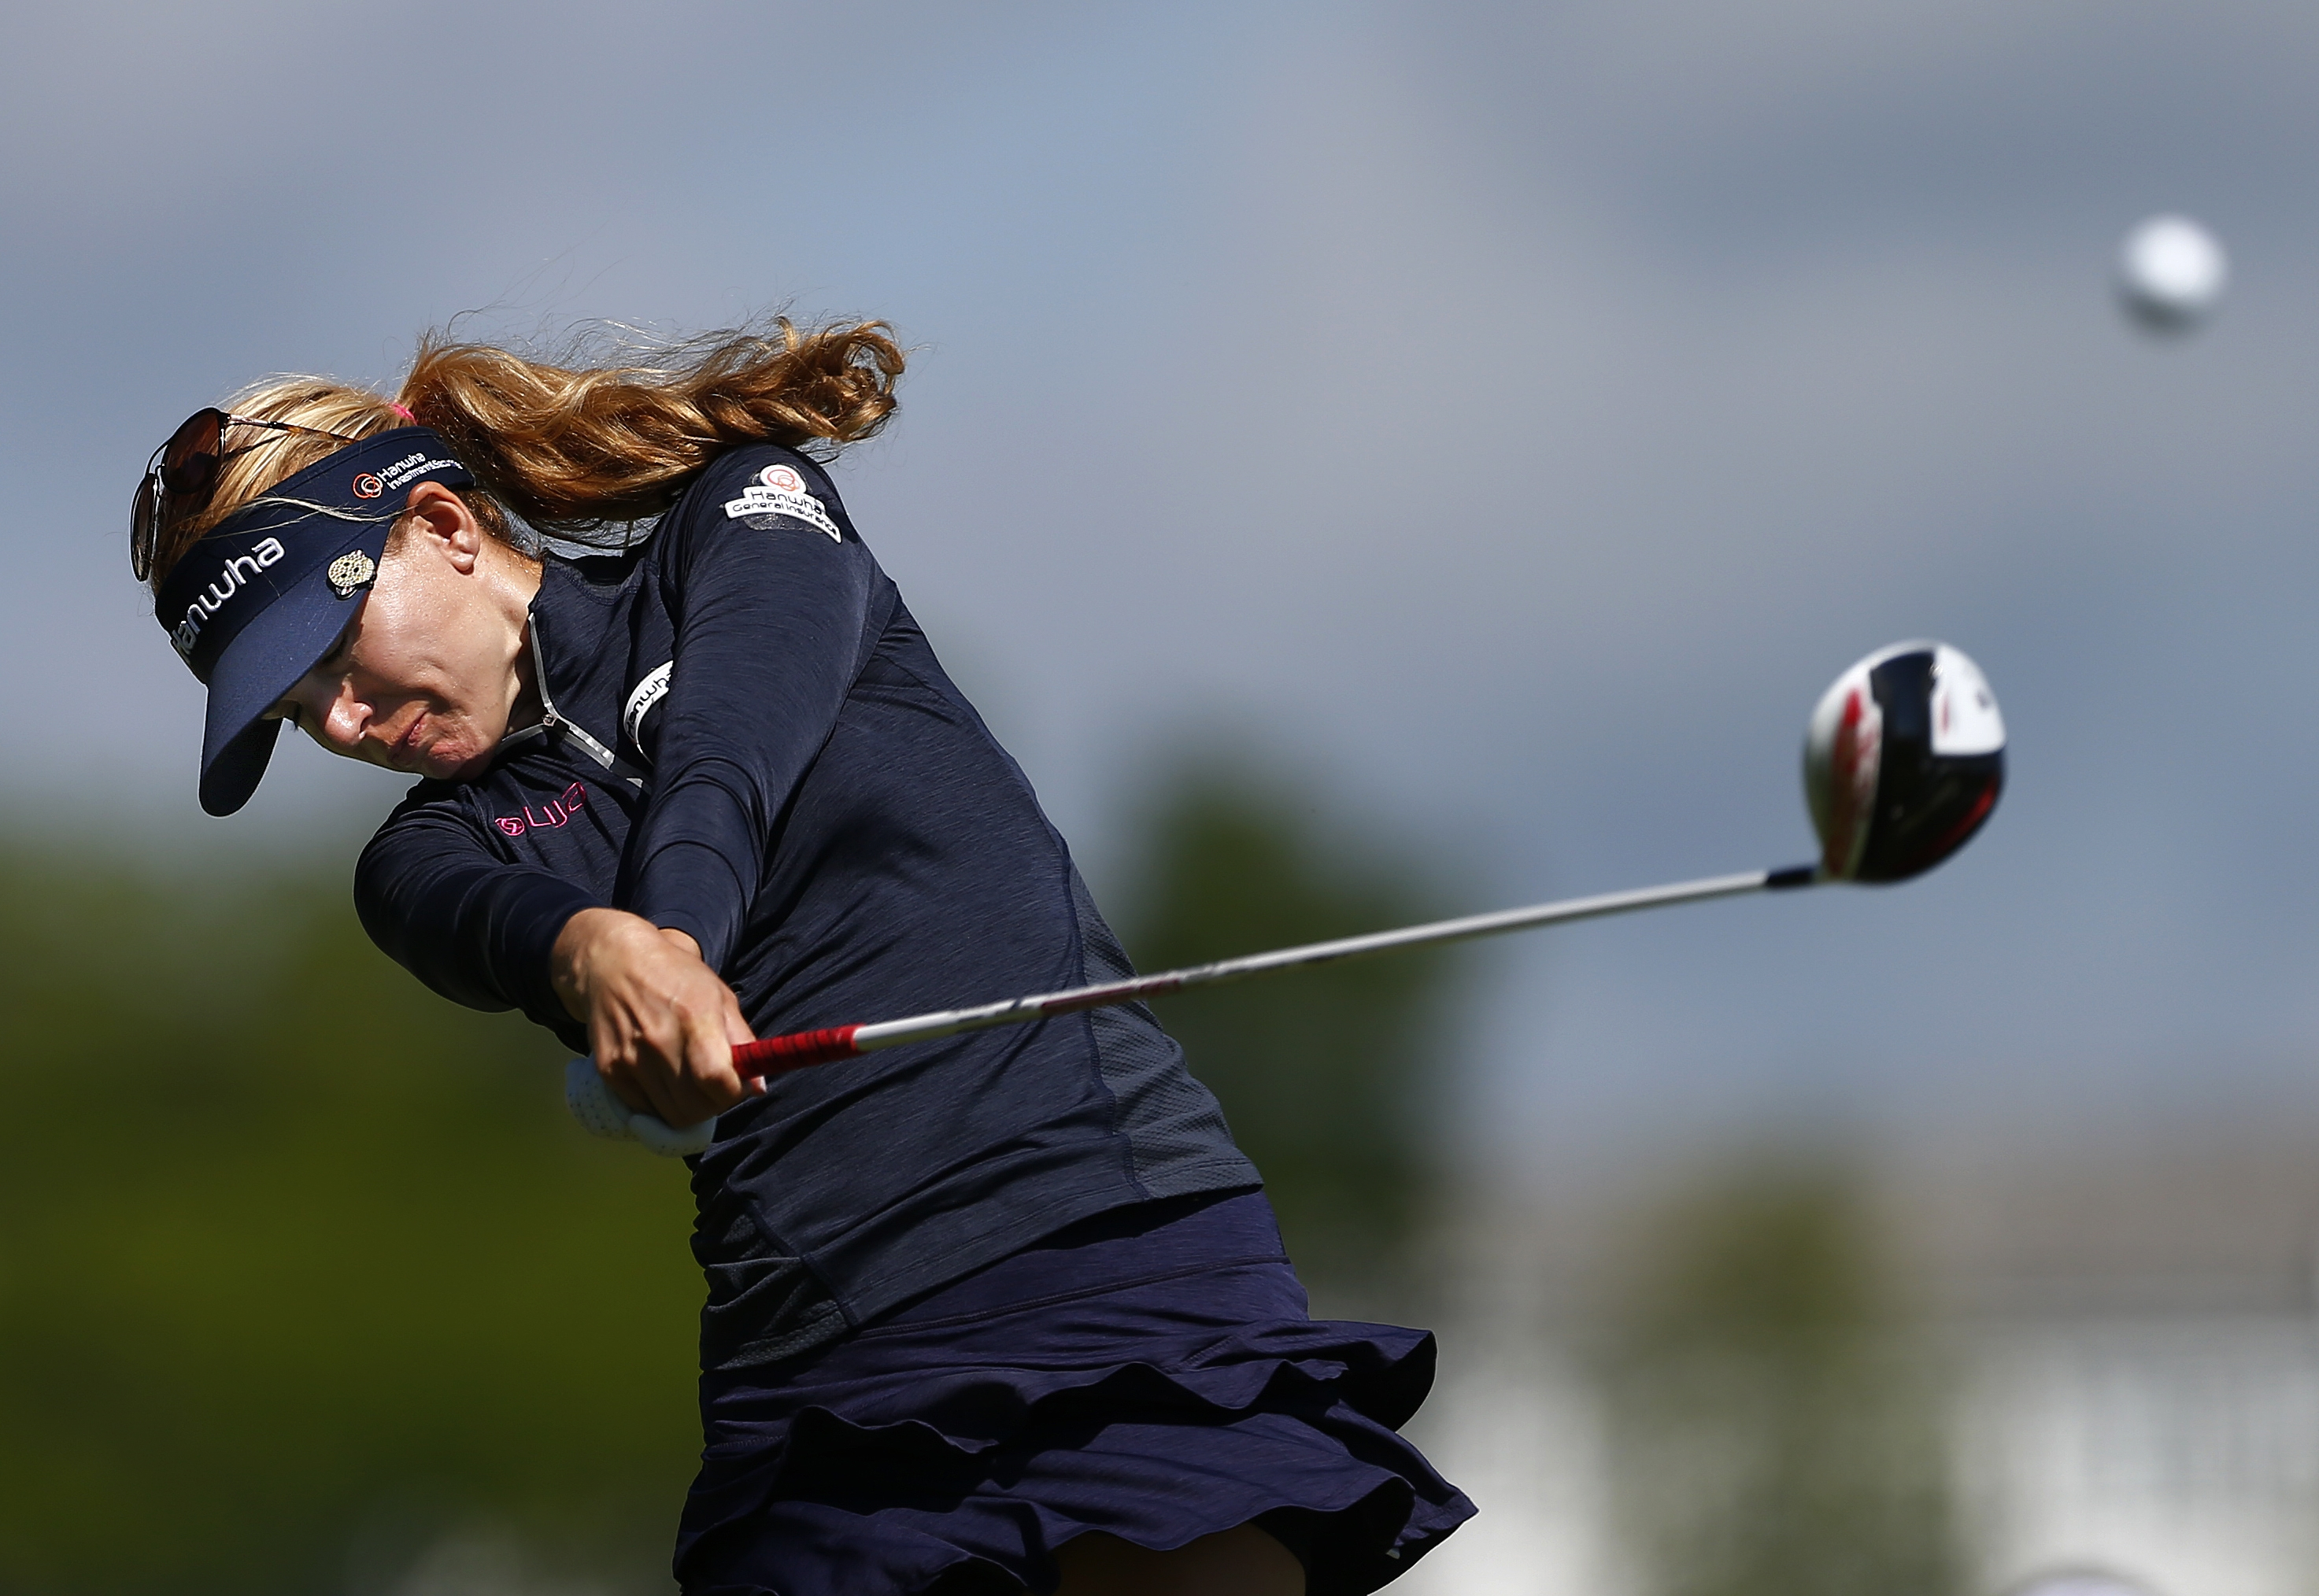 Sydnee Michaels hits her tee shot on the first hole during the second round of the ShopRite LPGA Classic golf tournament, Saturday, May 30, 2015, in Galloway Township, N.J. (AP Photo/Rich Schultz)